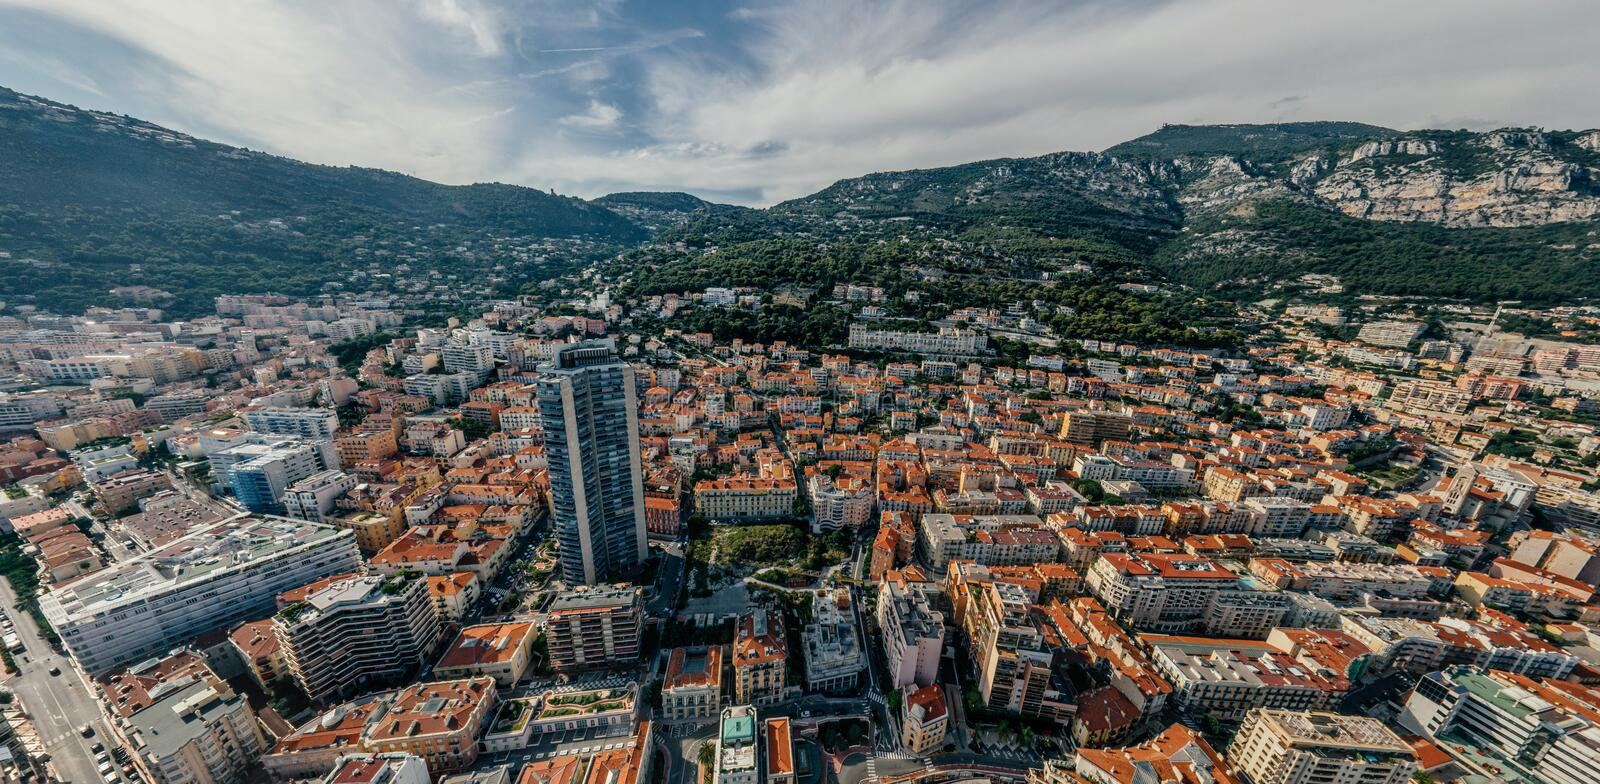 Mountains in Monaco Monte-Carlo city riviera Drone summer photo Air 360 vr virtual reality drone panorama. Sphere Panorama Summer Sea Coastline in Monaco Air stock image